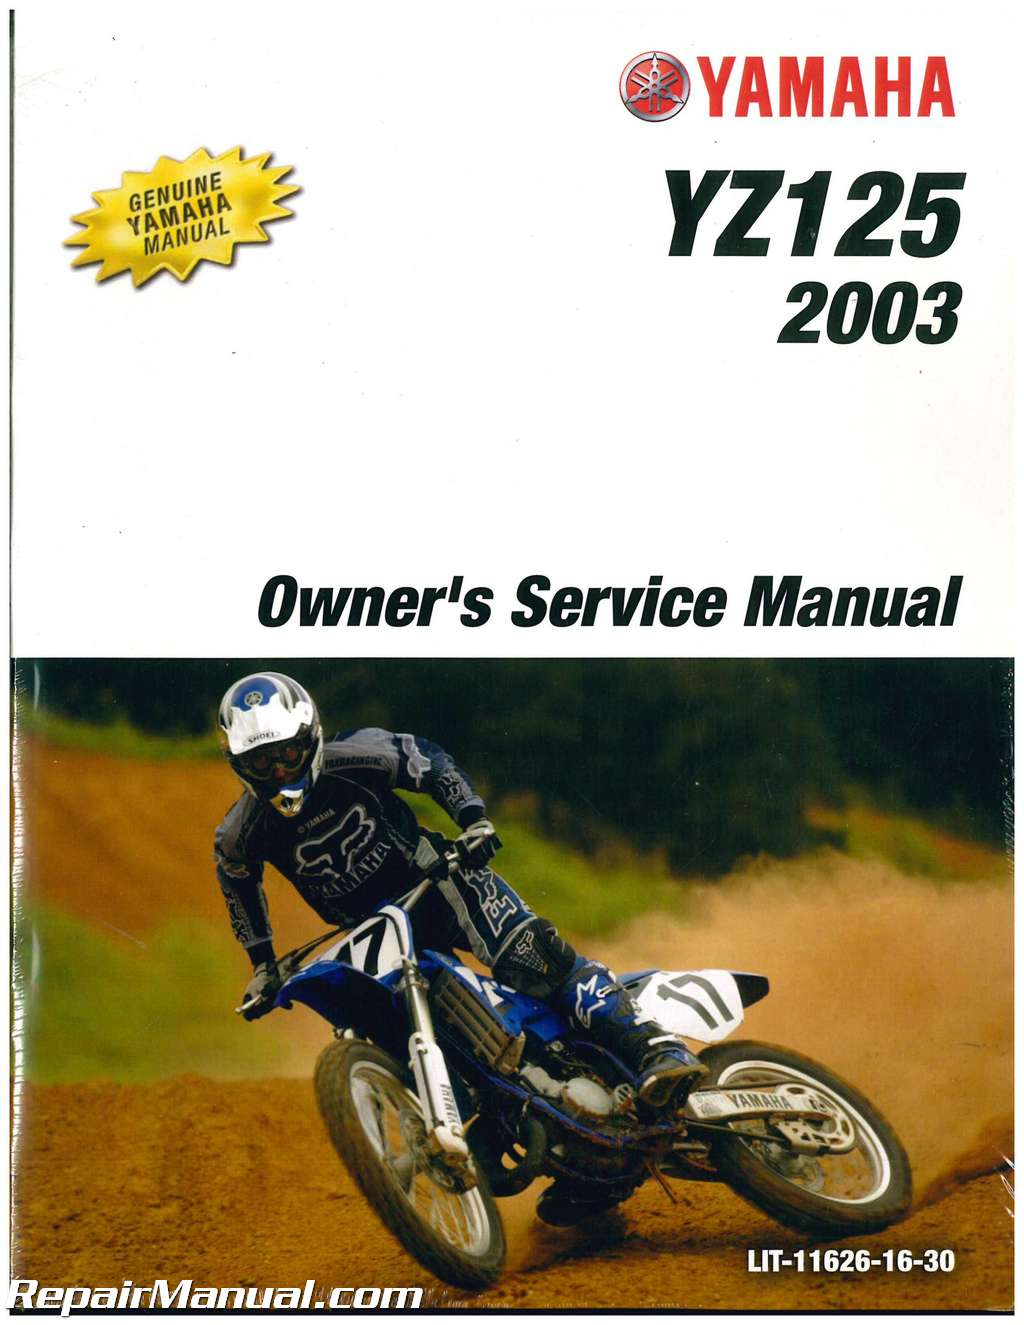 2003 yamaha yz125r service manual. Black Bedroom Furniture Sets. Home Design Ideas